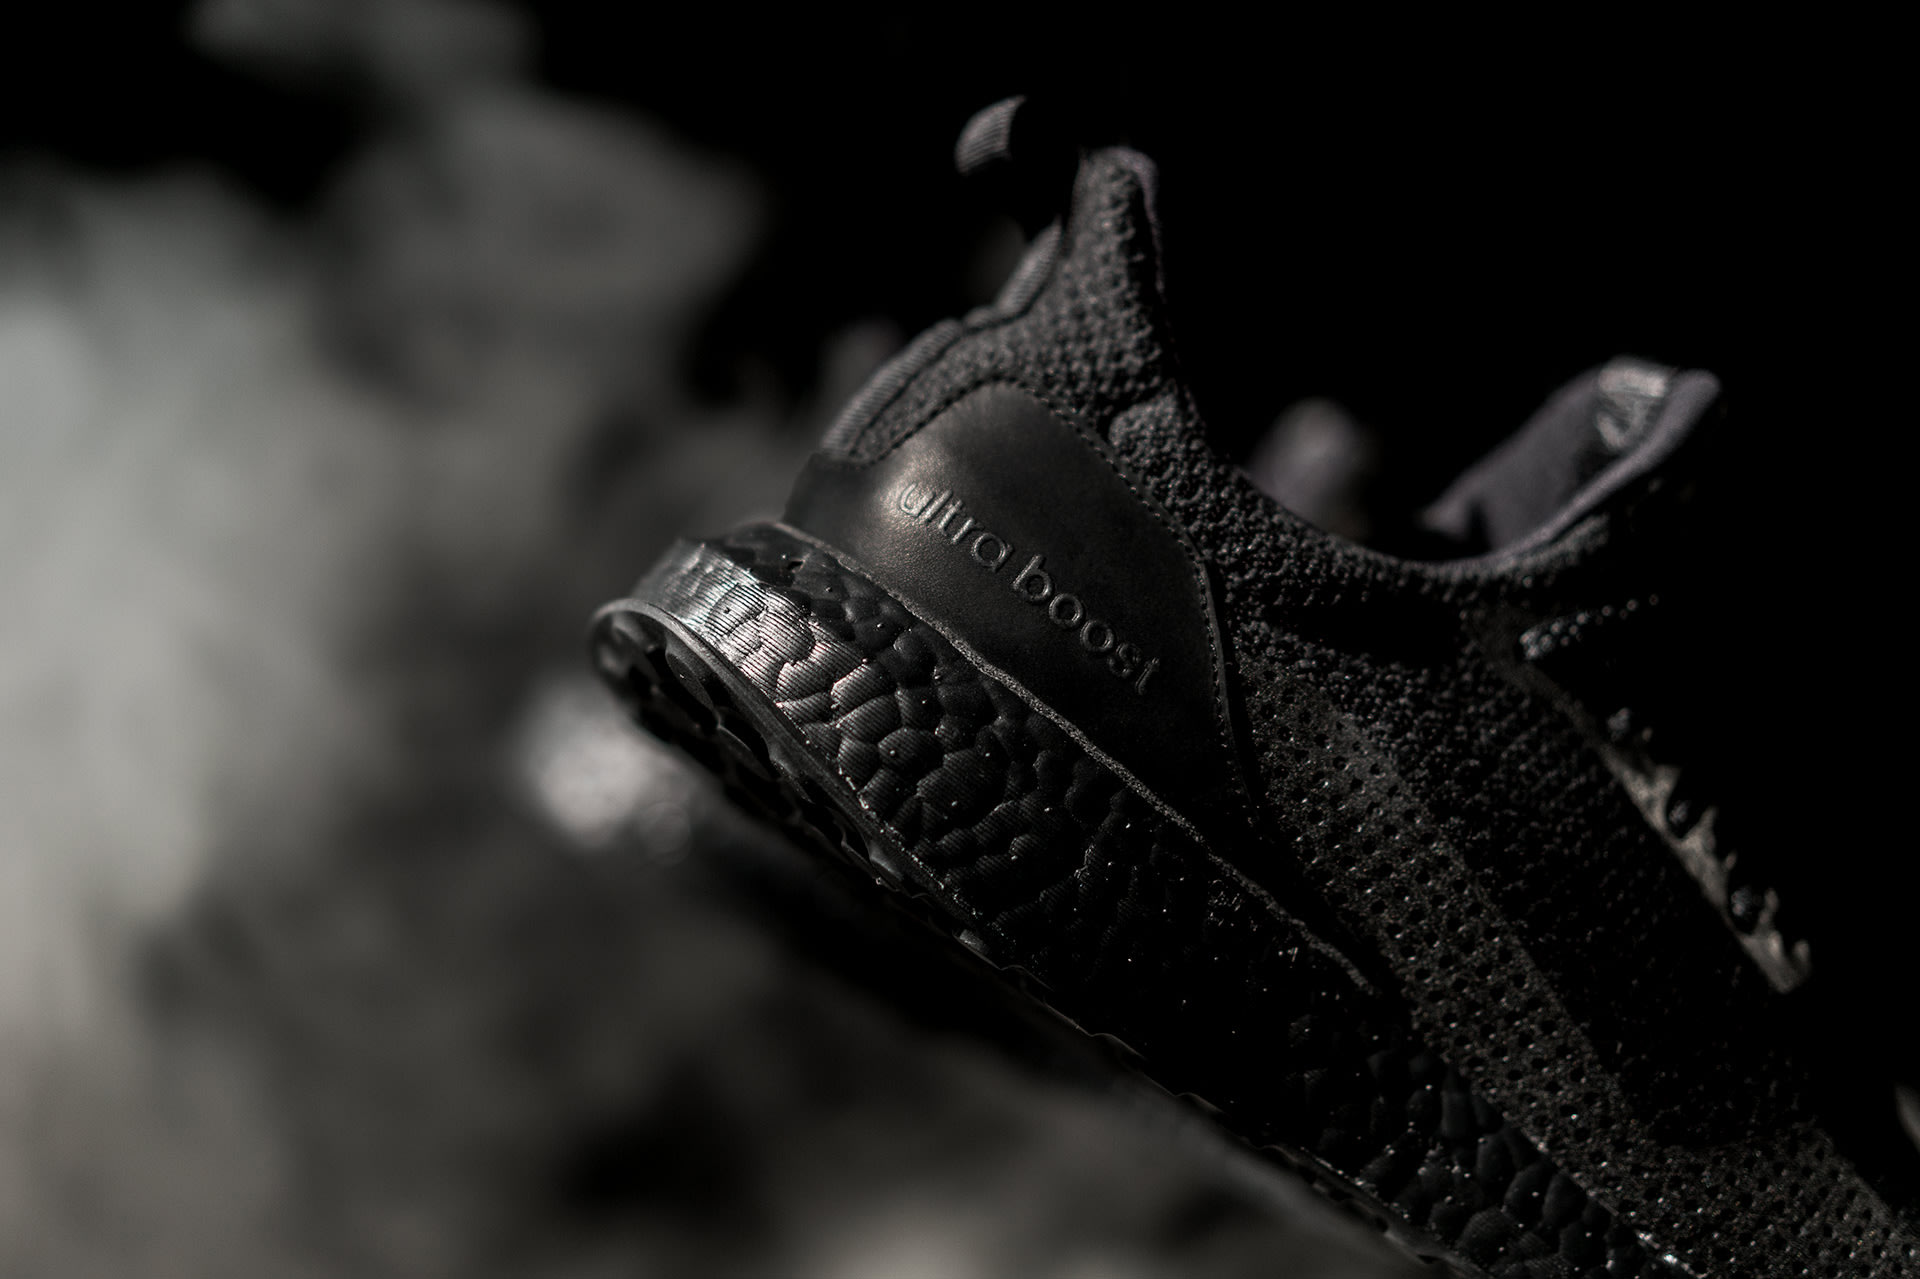 f7ac5e9b88b Adidas Consortium X Haven Ultra Boost Uncaged Triple Black BY2638 4 5-10.5  rf 1 Athletic ...